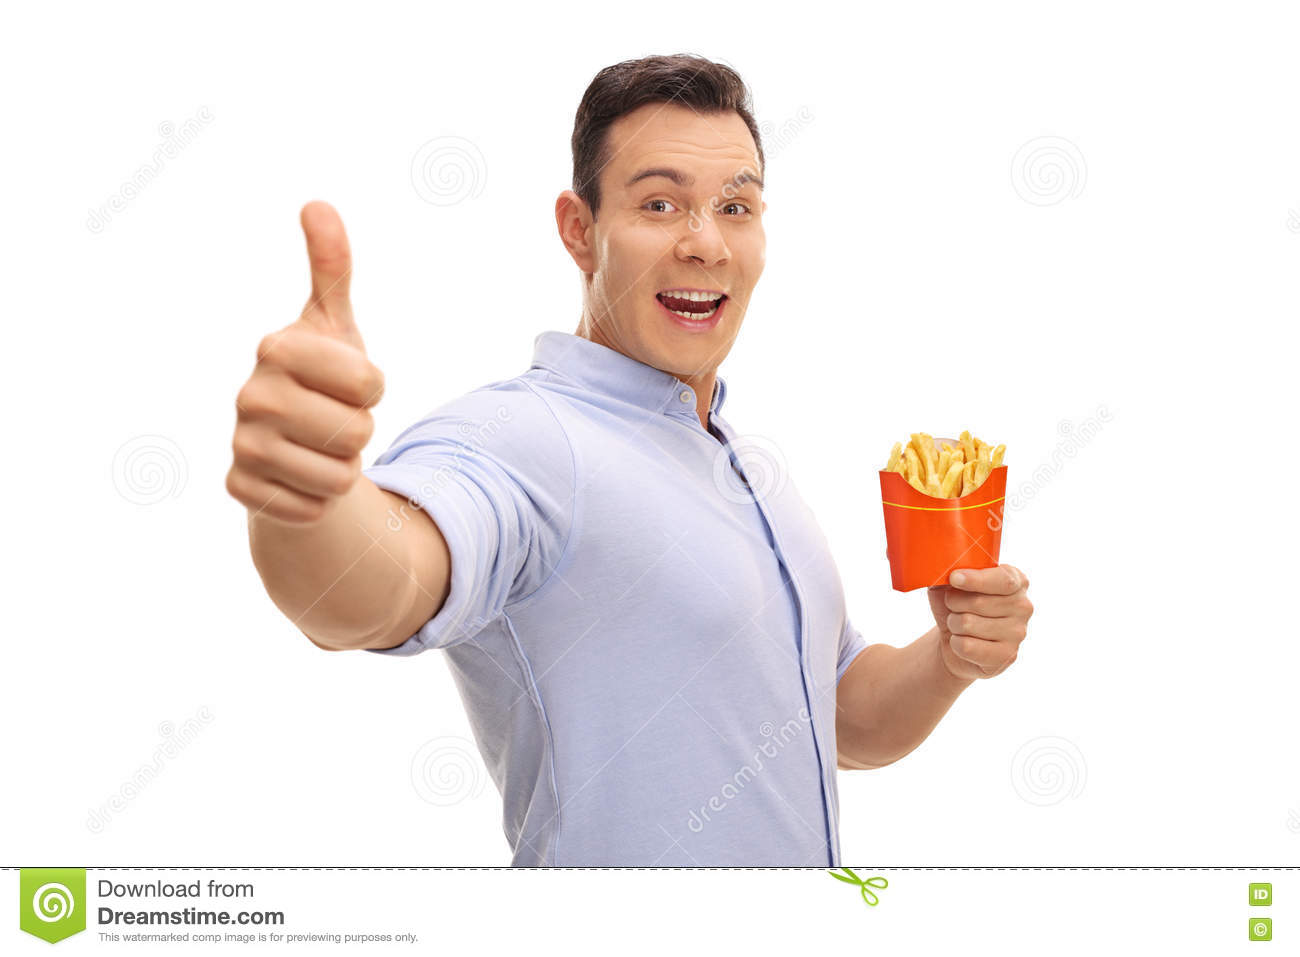 fries single men Whataburger you're looking at our new menu great new meal options new salads and kid's meals items under 550 calories learn more about our individual food items.